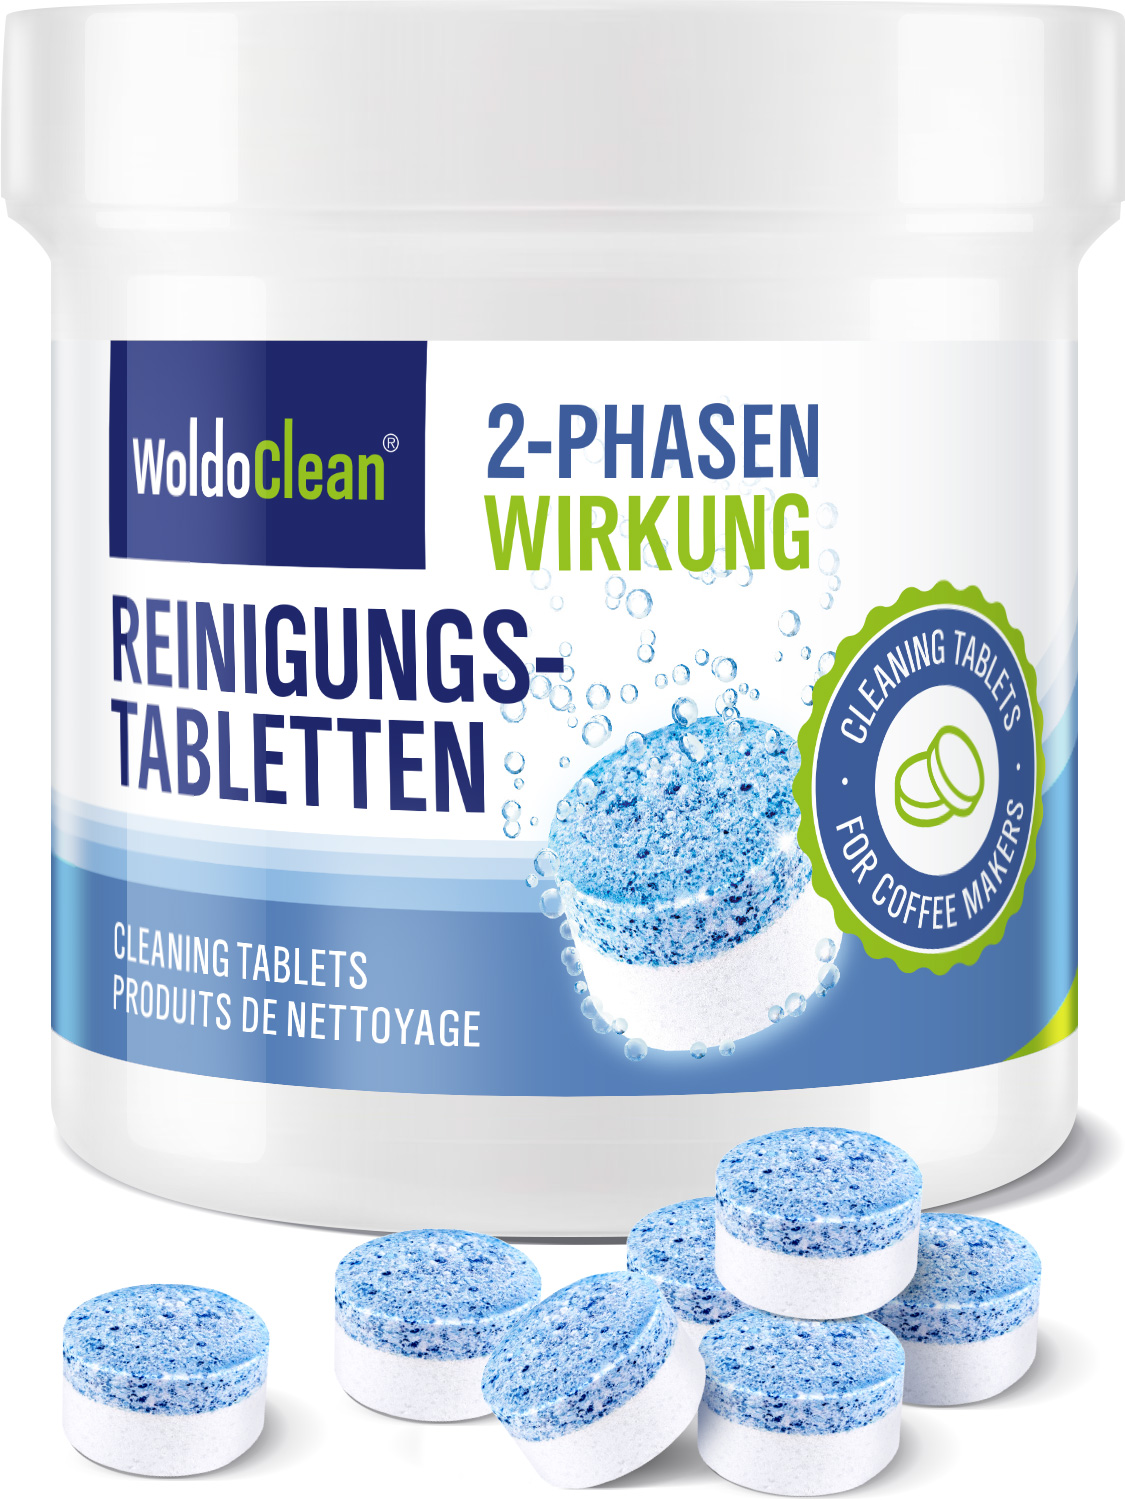 WoldoClean_Amazon_190306_Reinigungstabletten-2Phasen_31x3.5g